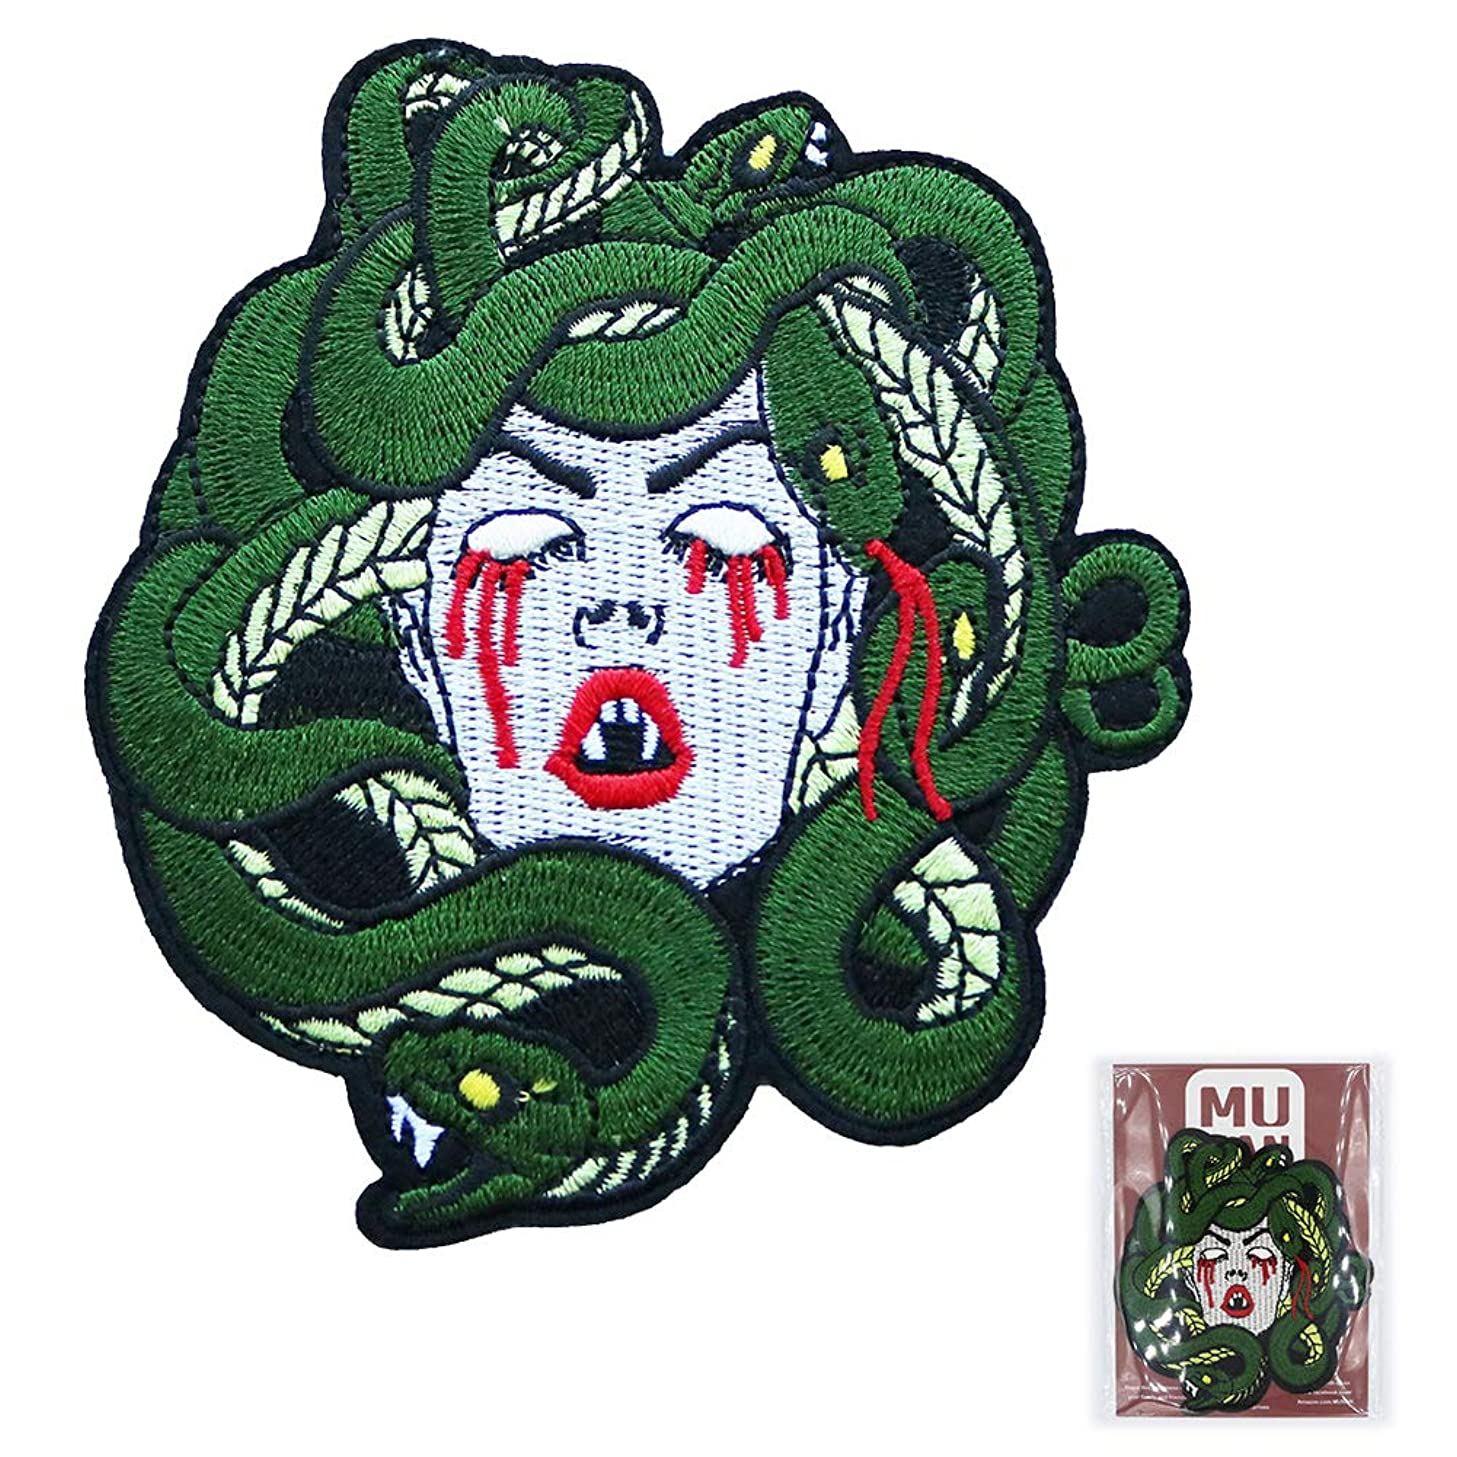 MUNAN Iron on Patch sad Bleeding Medusa Patch Cool Iron On Patch Sewing Anime Embroidered Patch Badge Applique for Clothes Jacket Jeans Cap Bag